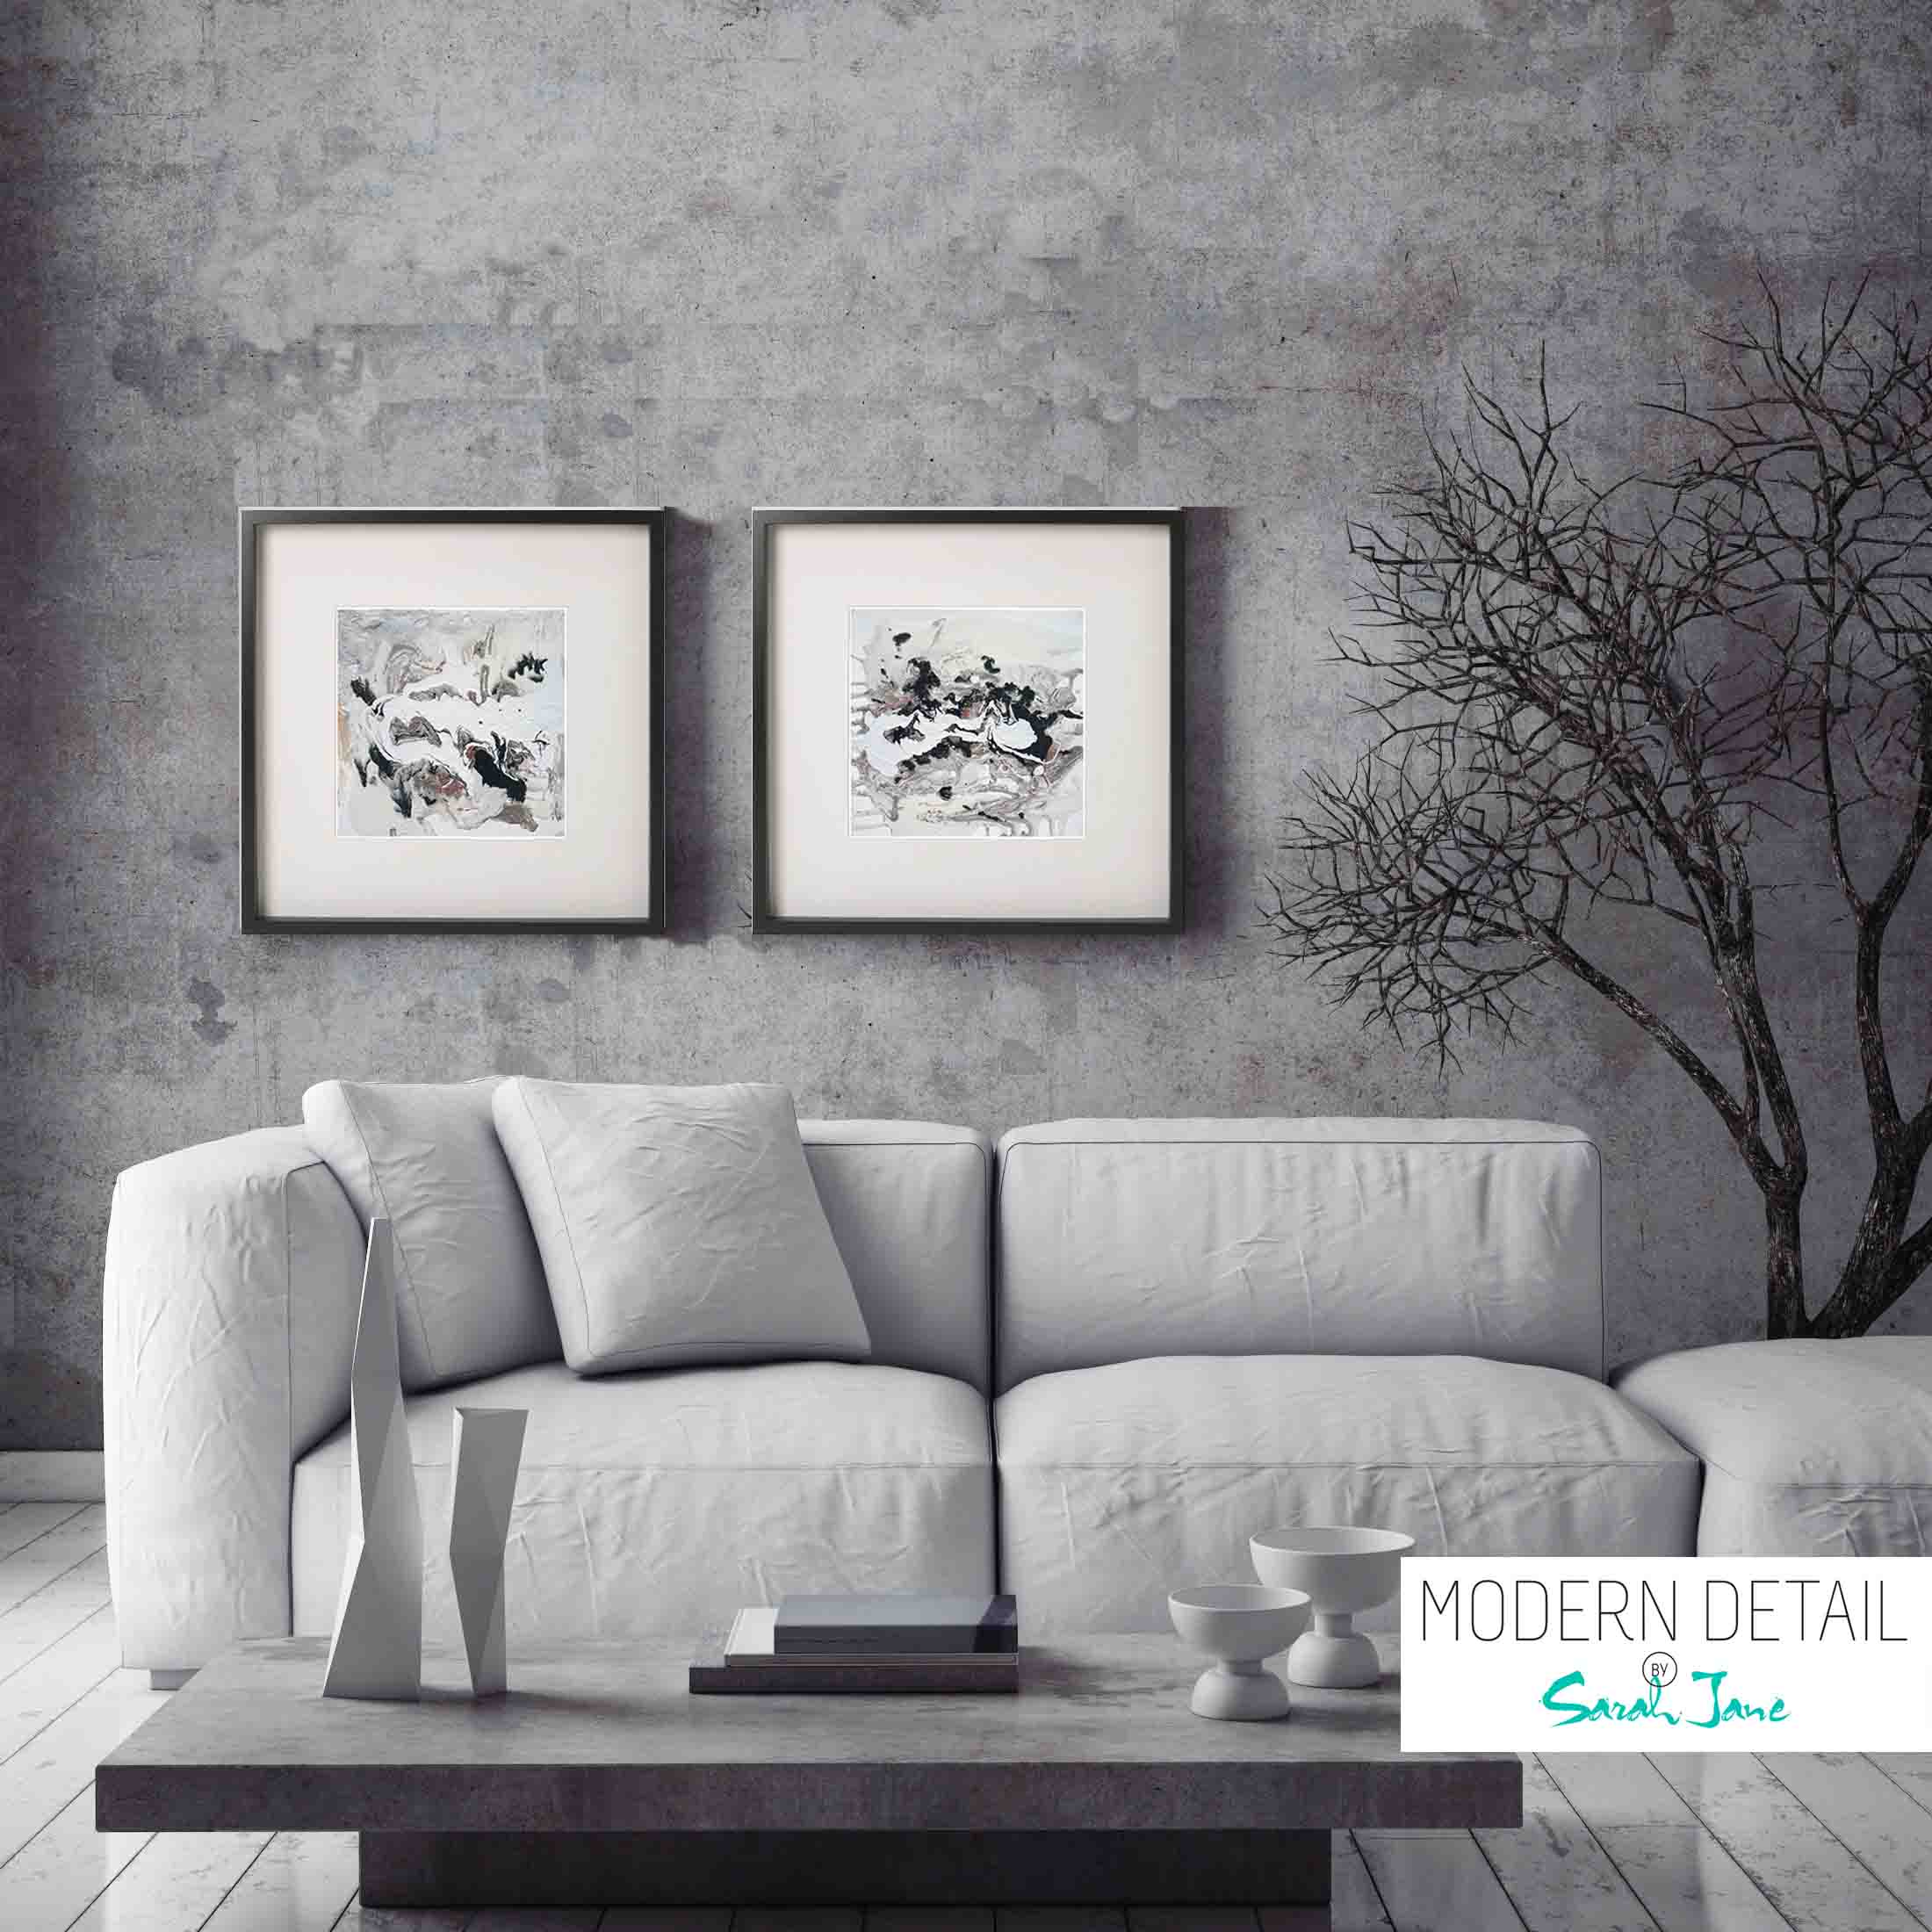 Sarah Jane 2018 Collection Nature I Modern Abstract Painting Neutral Colours In Black Shadowbox Frame Modern Detail By Sarah Jane